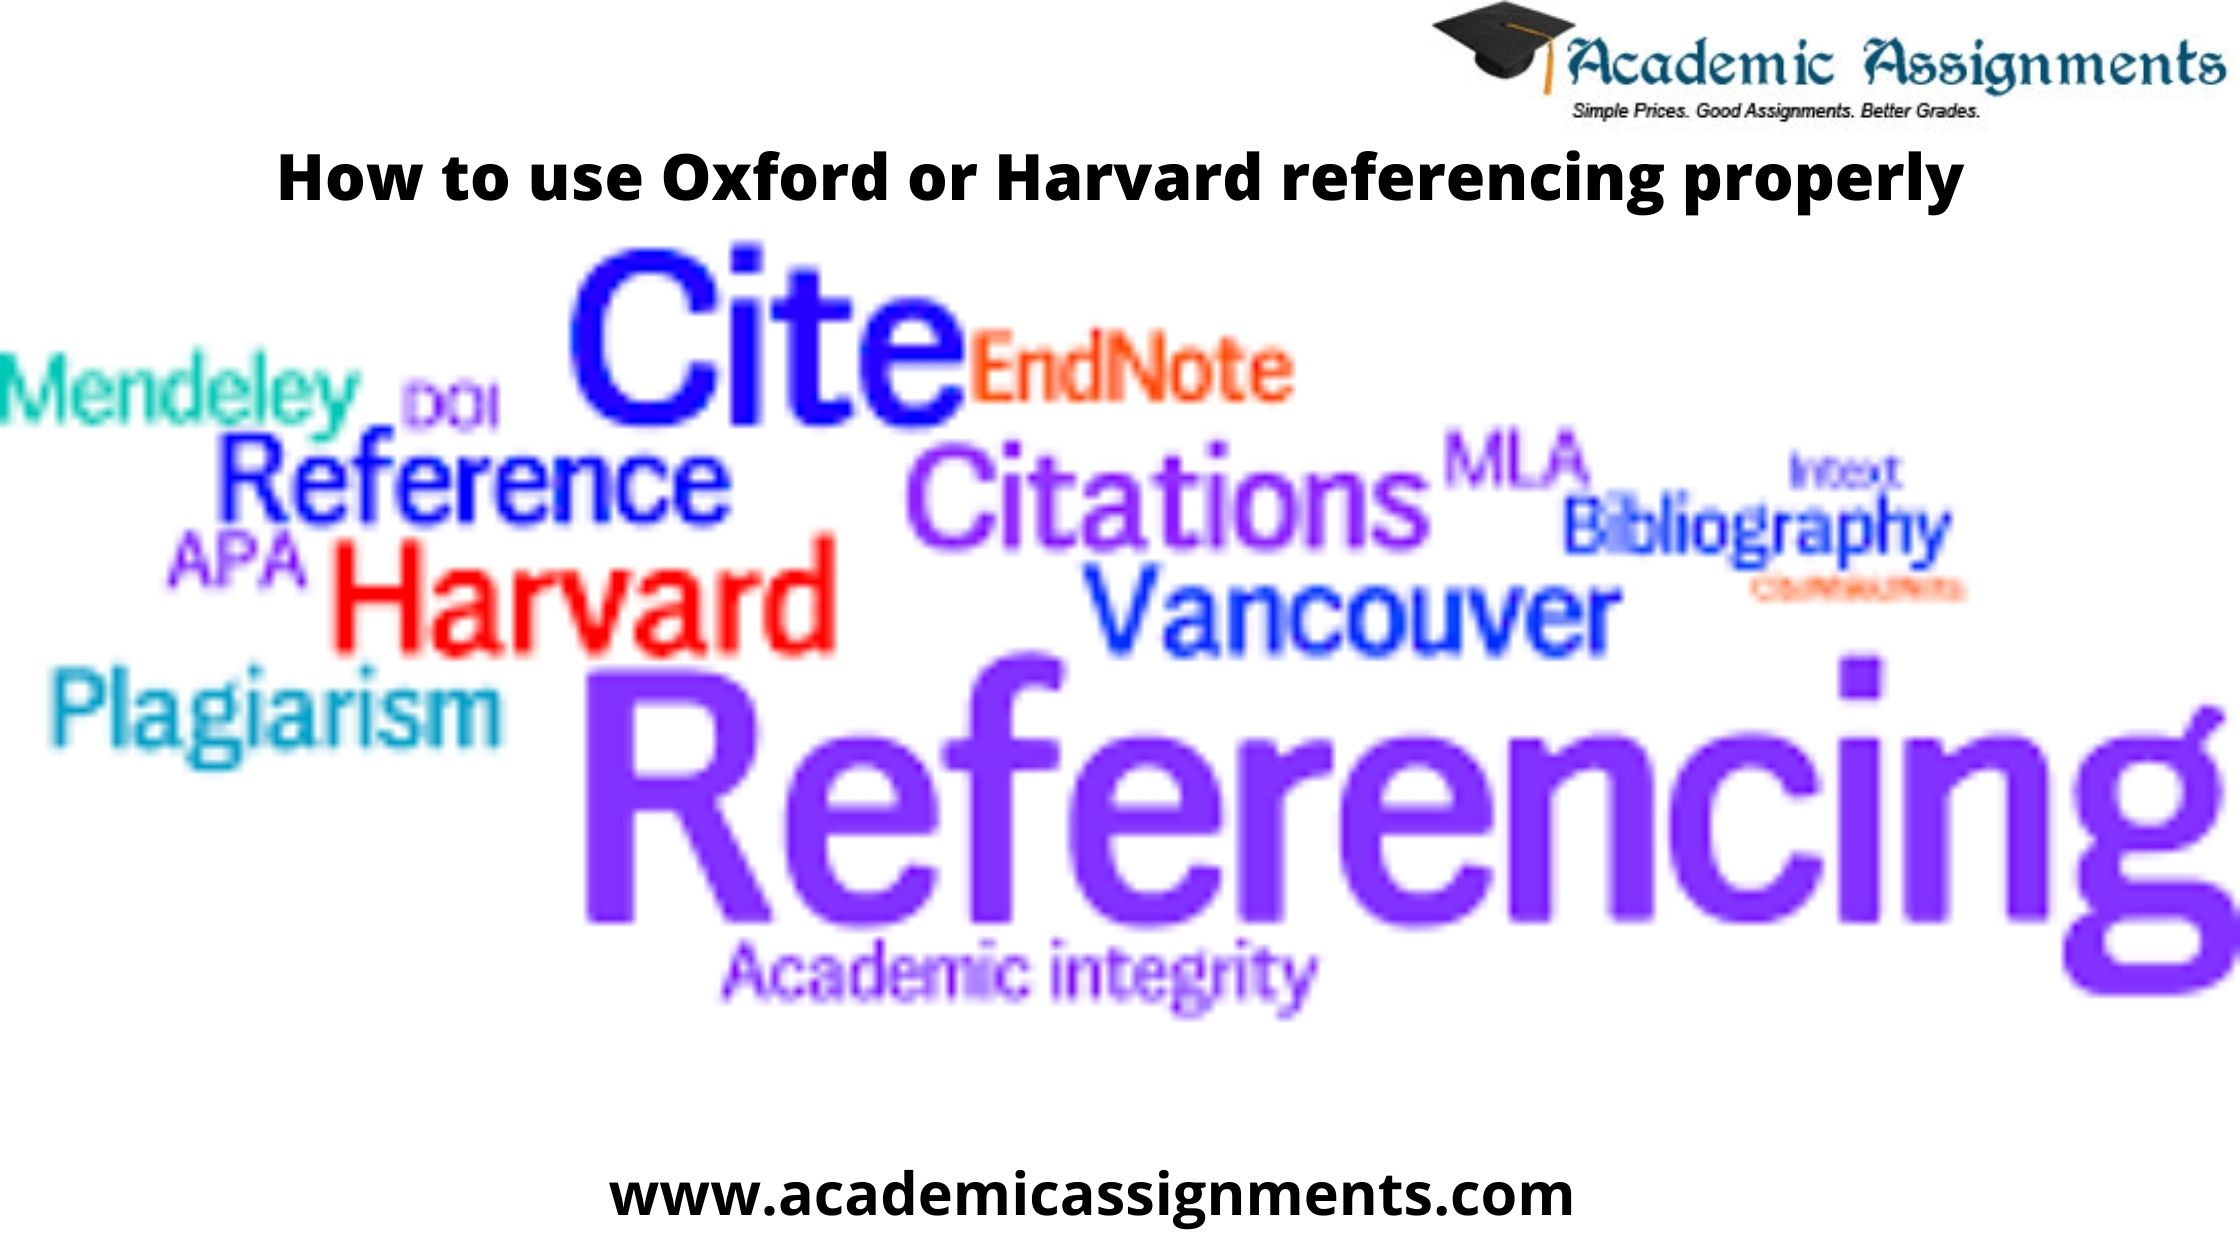 How to use Oxford or Harvard referencing properly